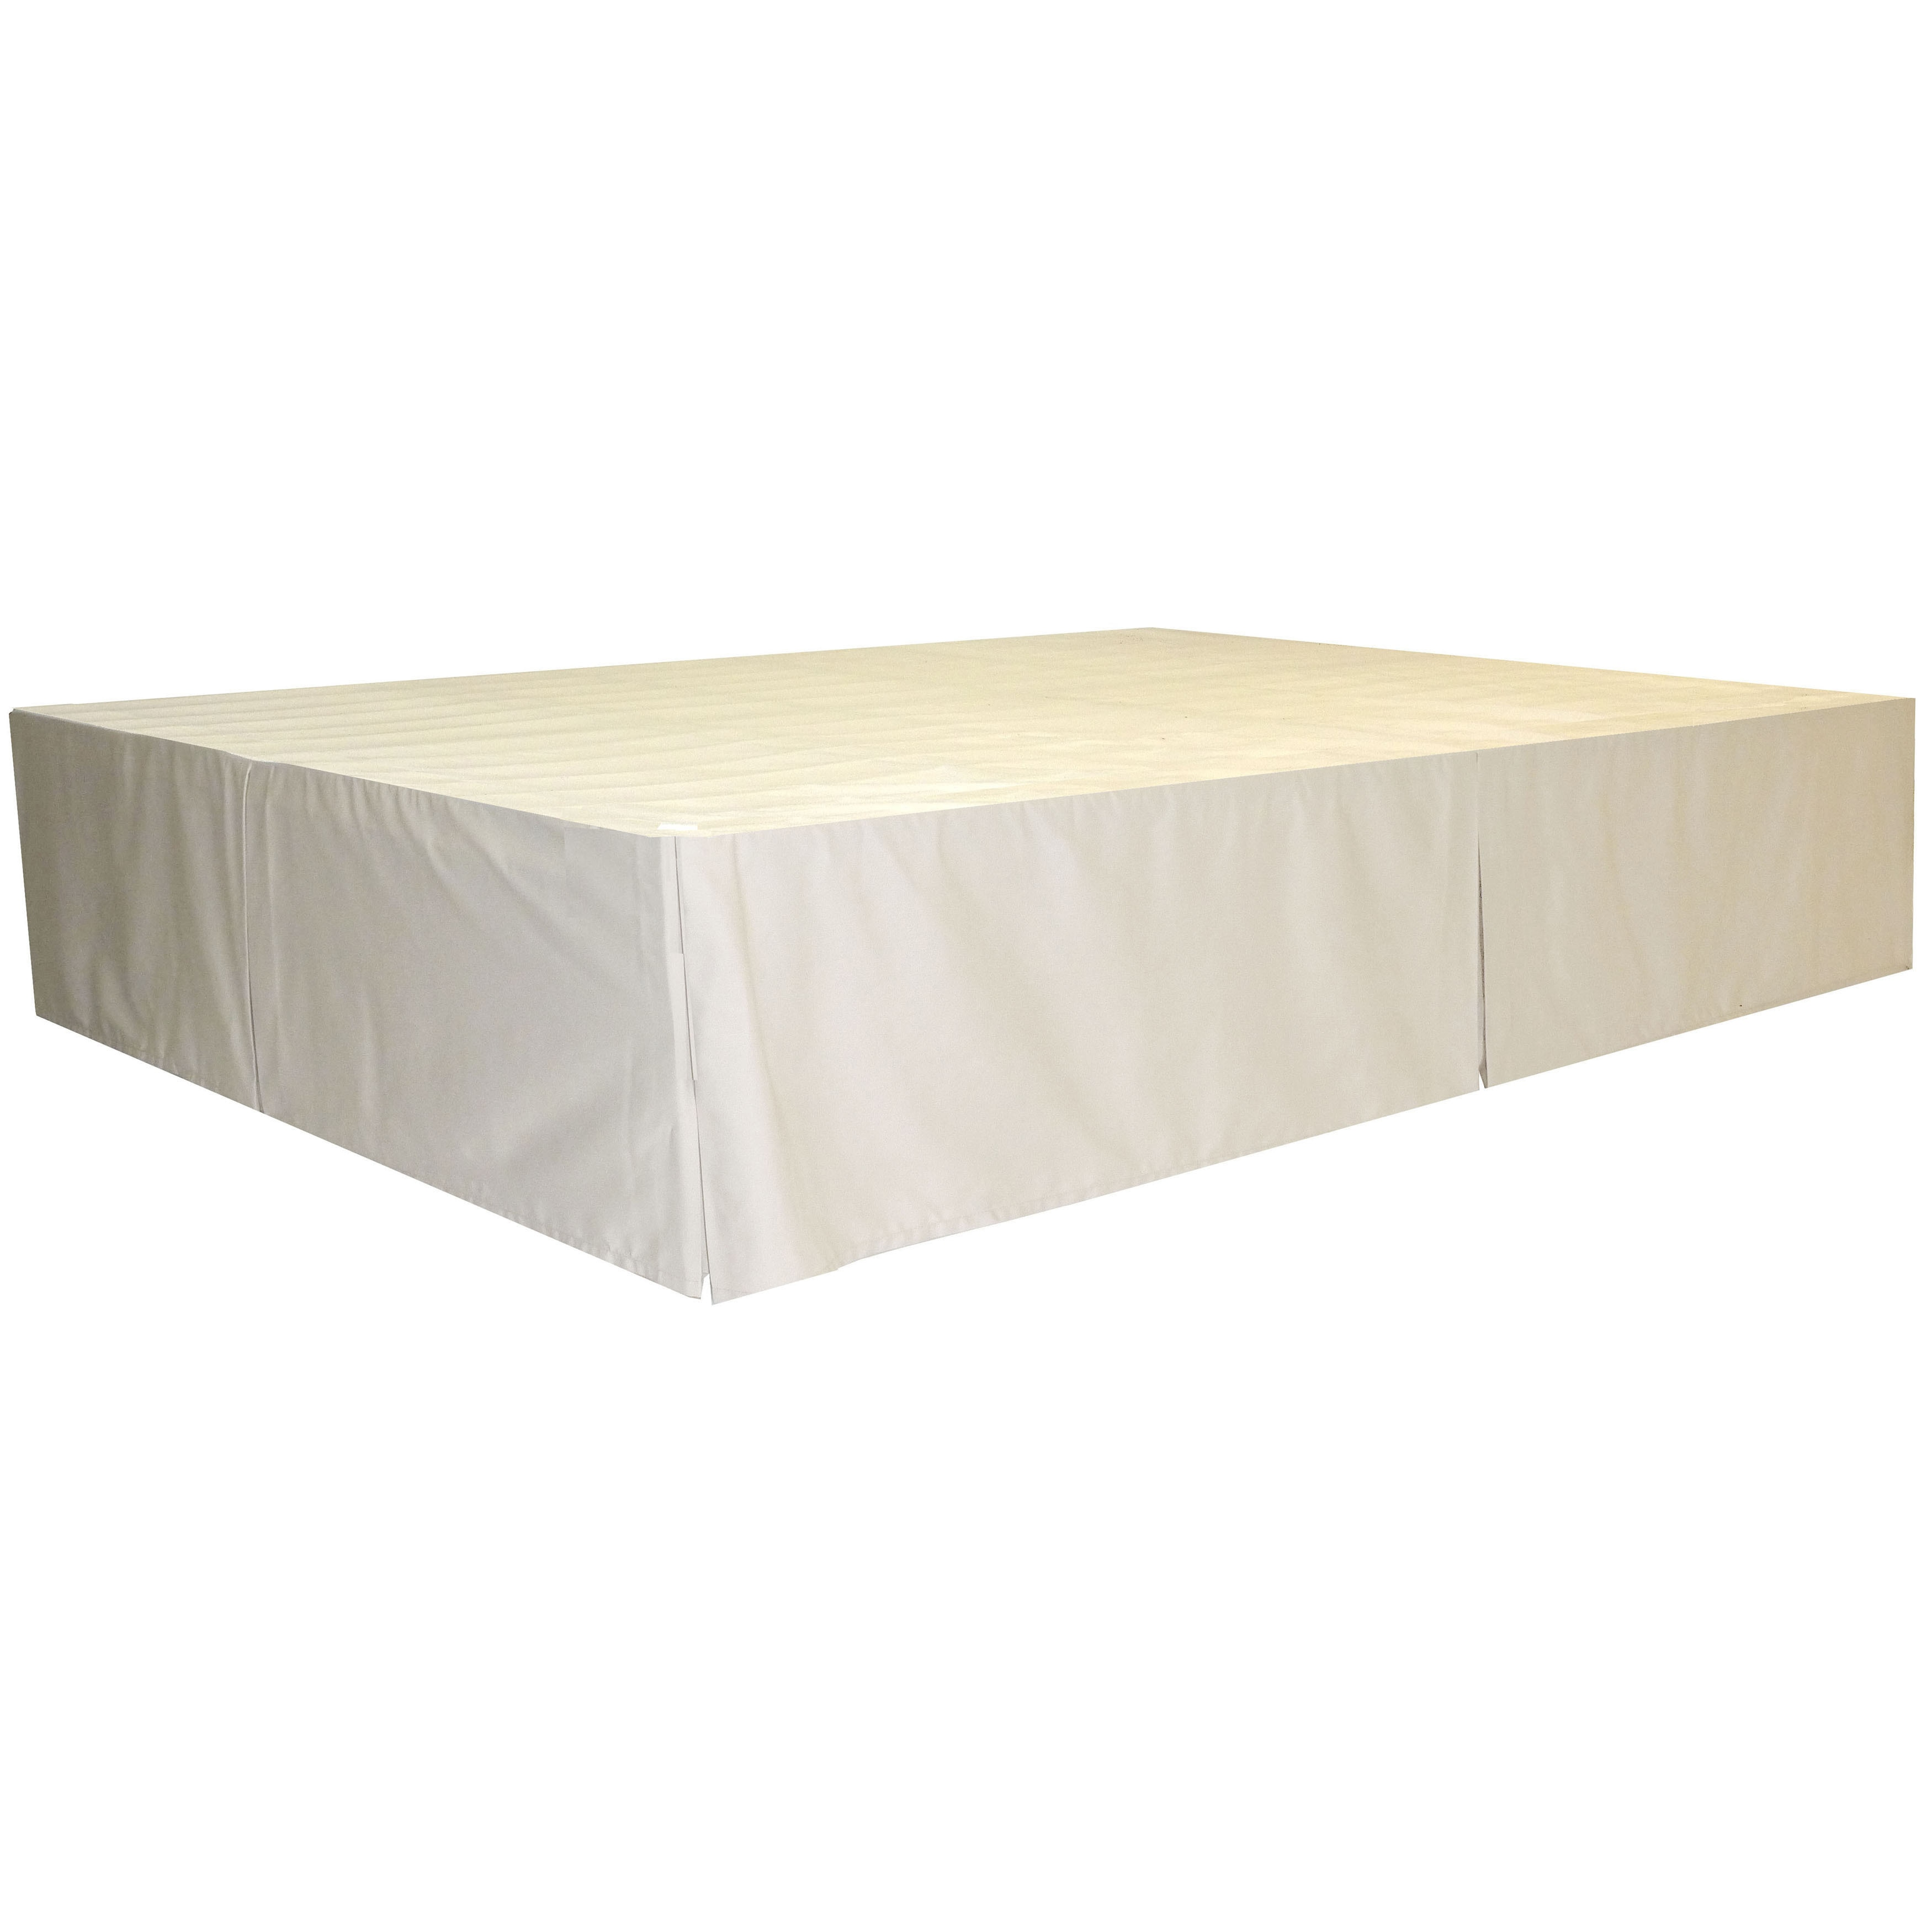 DuraBed Queen Foundation and Frame in e Mattress Support Bed